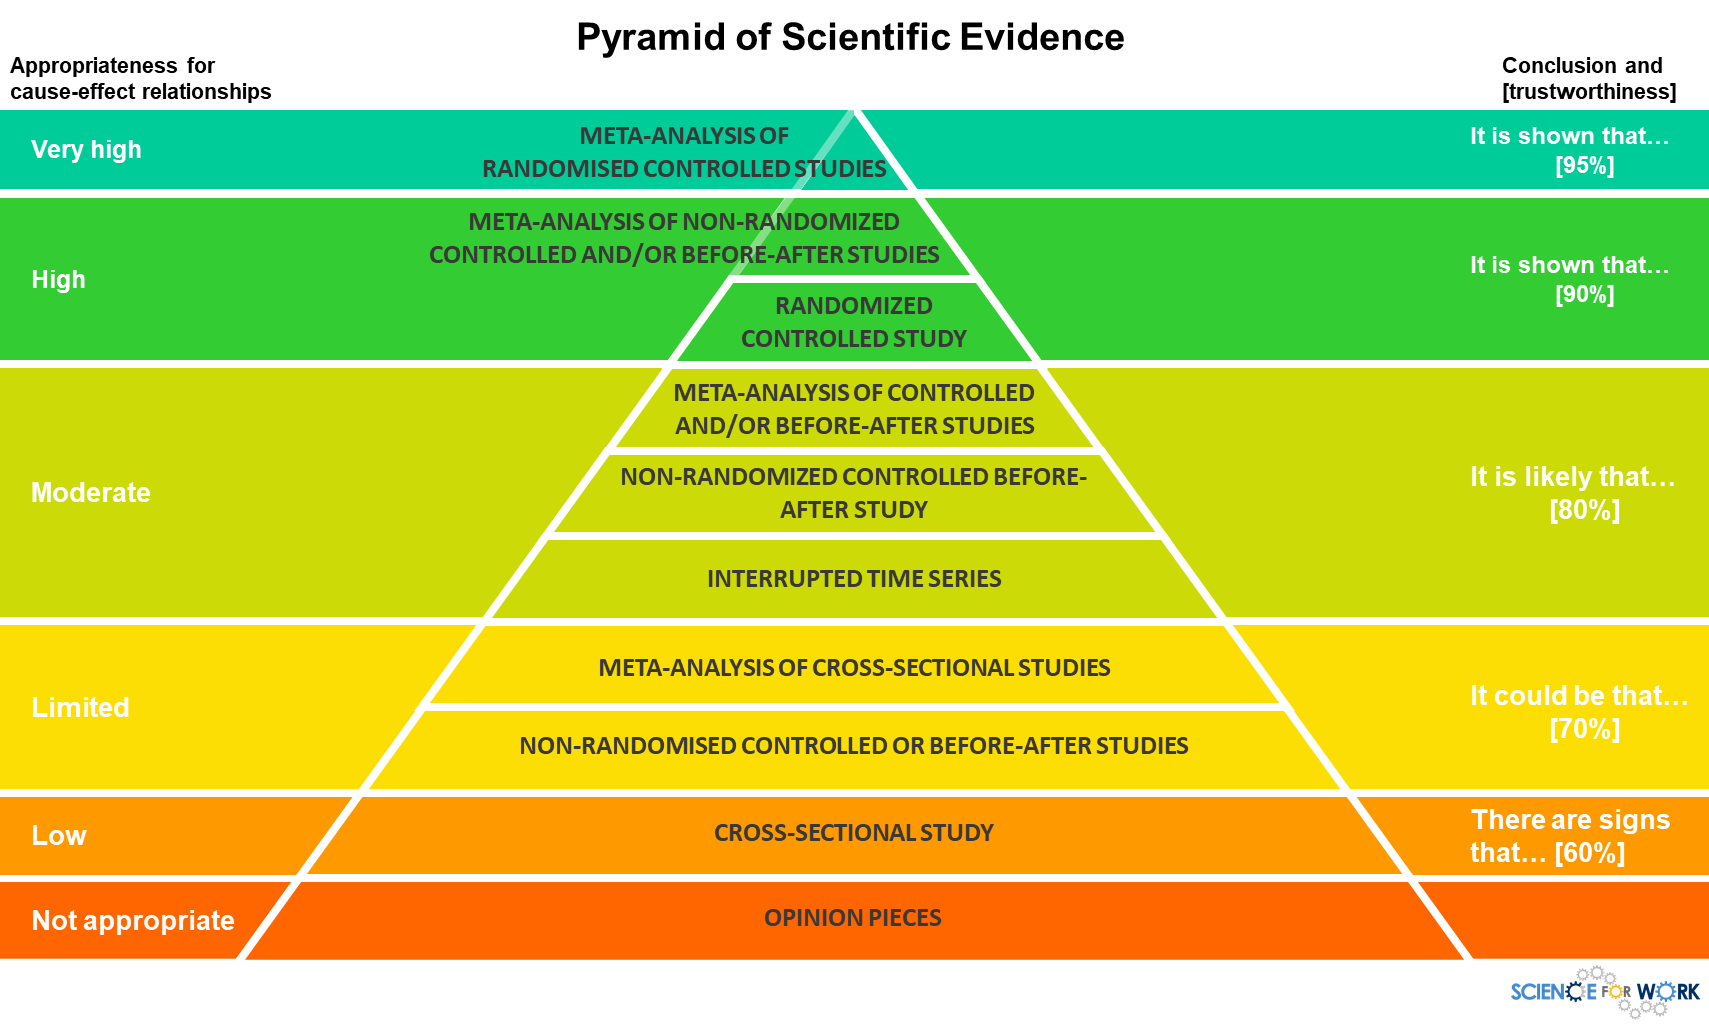 This is a pyramid of scientific evidence levels, with the highest quality evidence on top and associated trustworthiness scores (percentages) along the side.